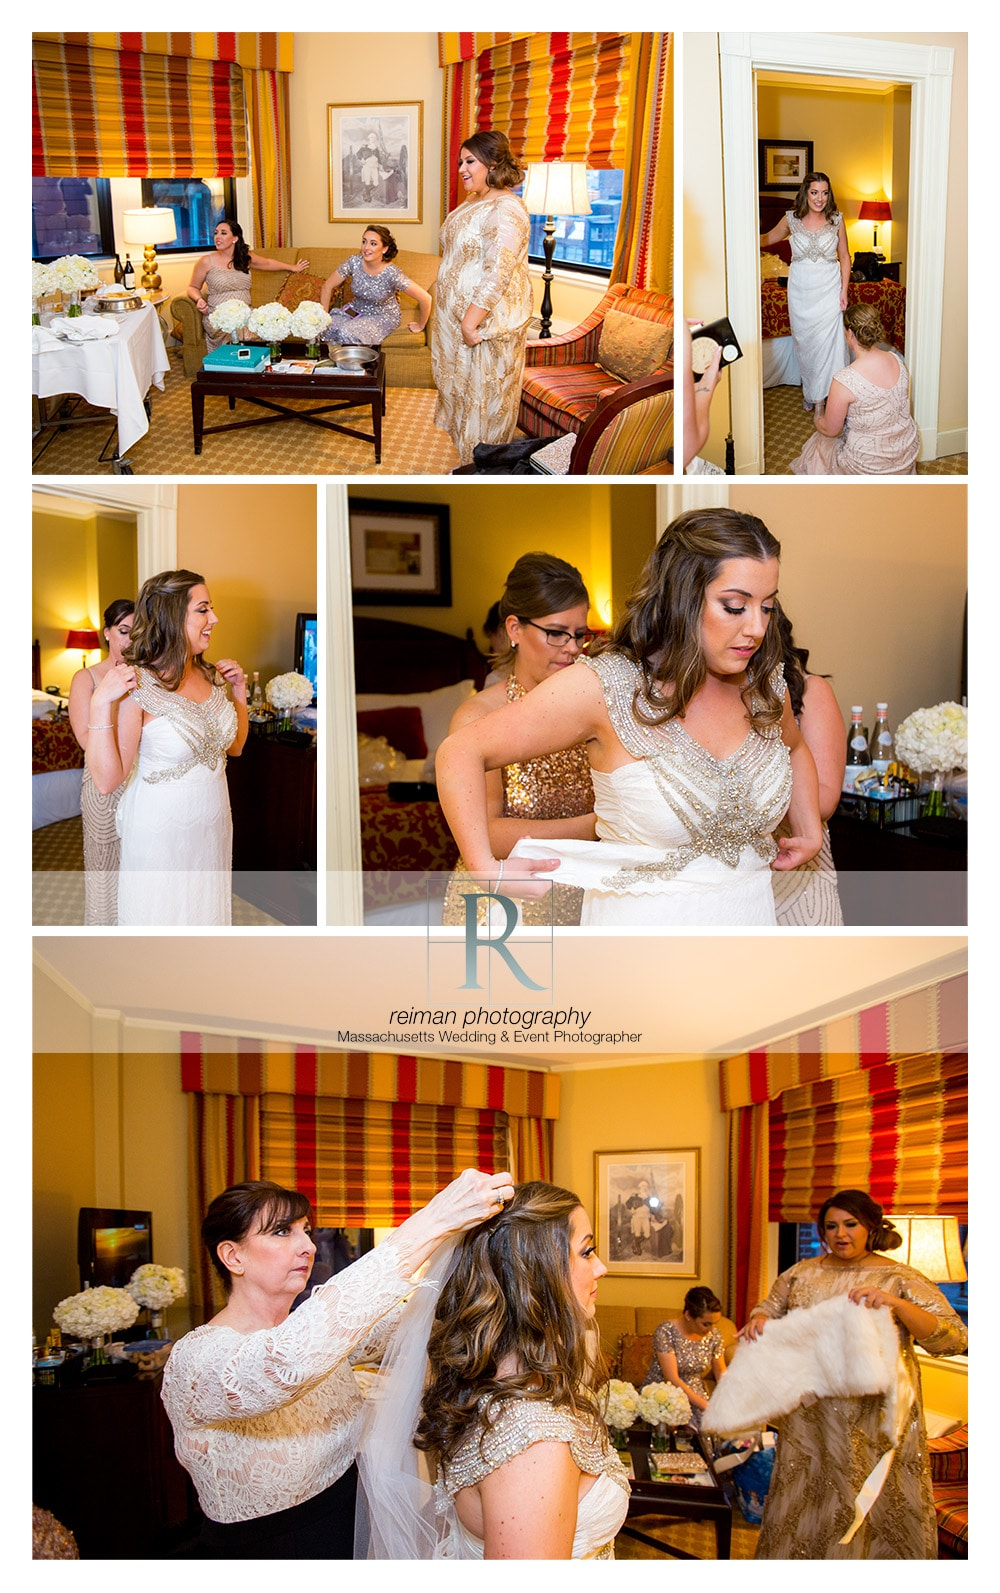 Wedding, New Years Eve, The State Room, Boston, Reiman Photography